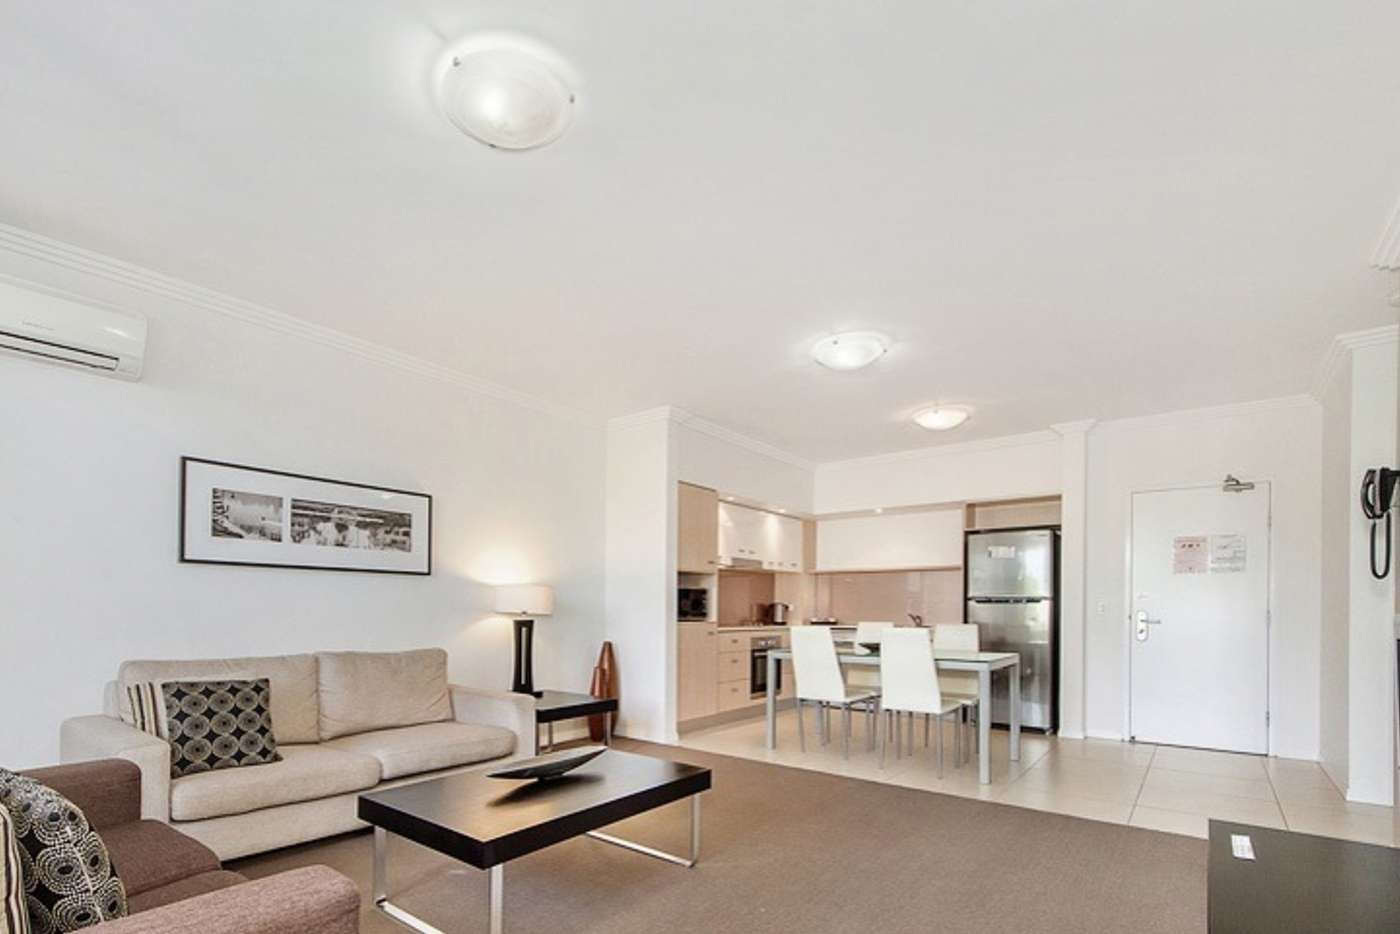 Main view of Homely apartment listing, 151/1-7 Moores Crescent, Varsity Lakes QLD 4227